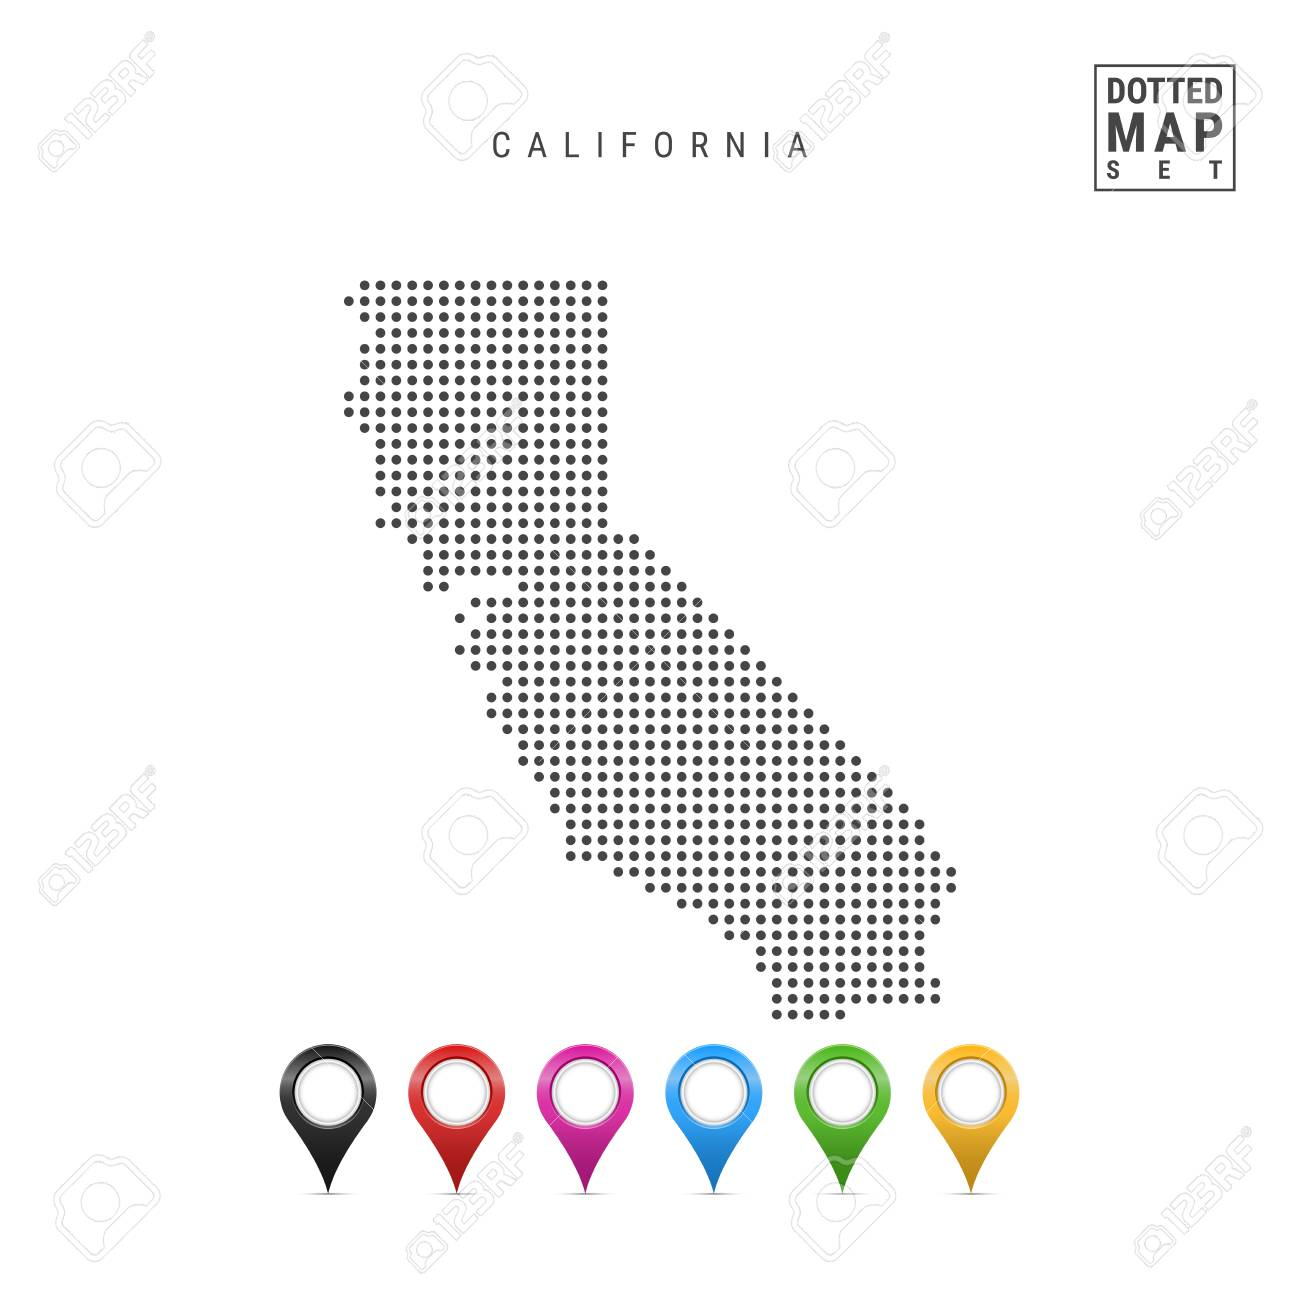 Dots Pattern Vector Map Of California Stylized Simple Silhouette